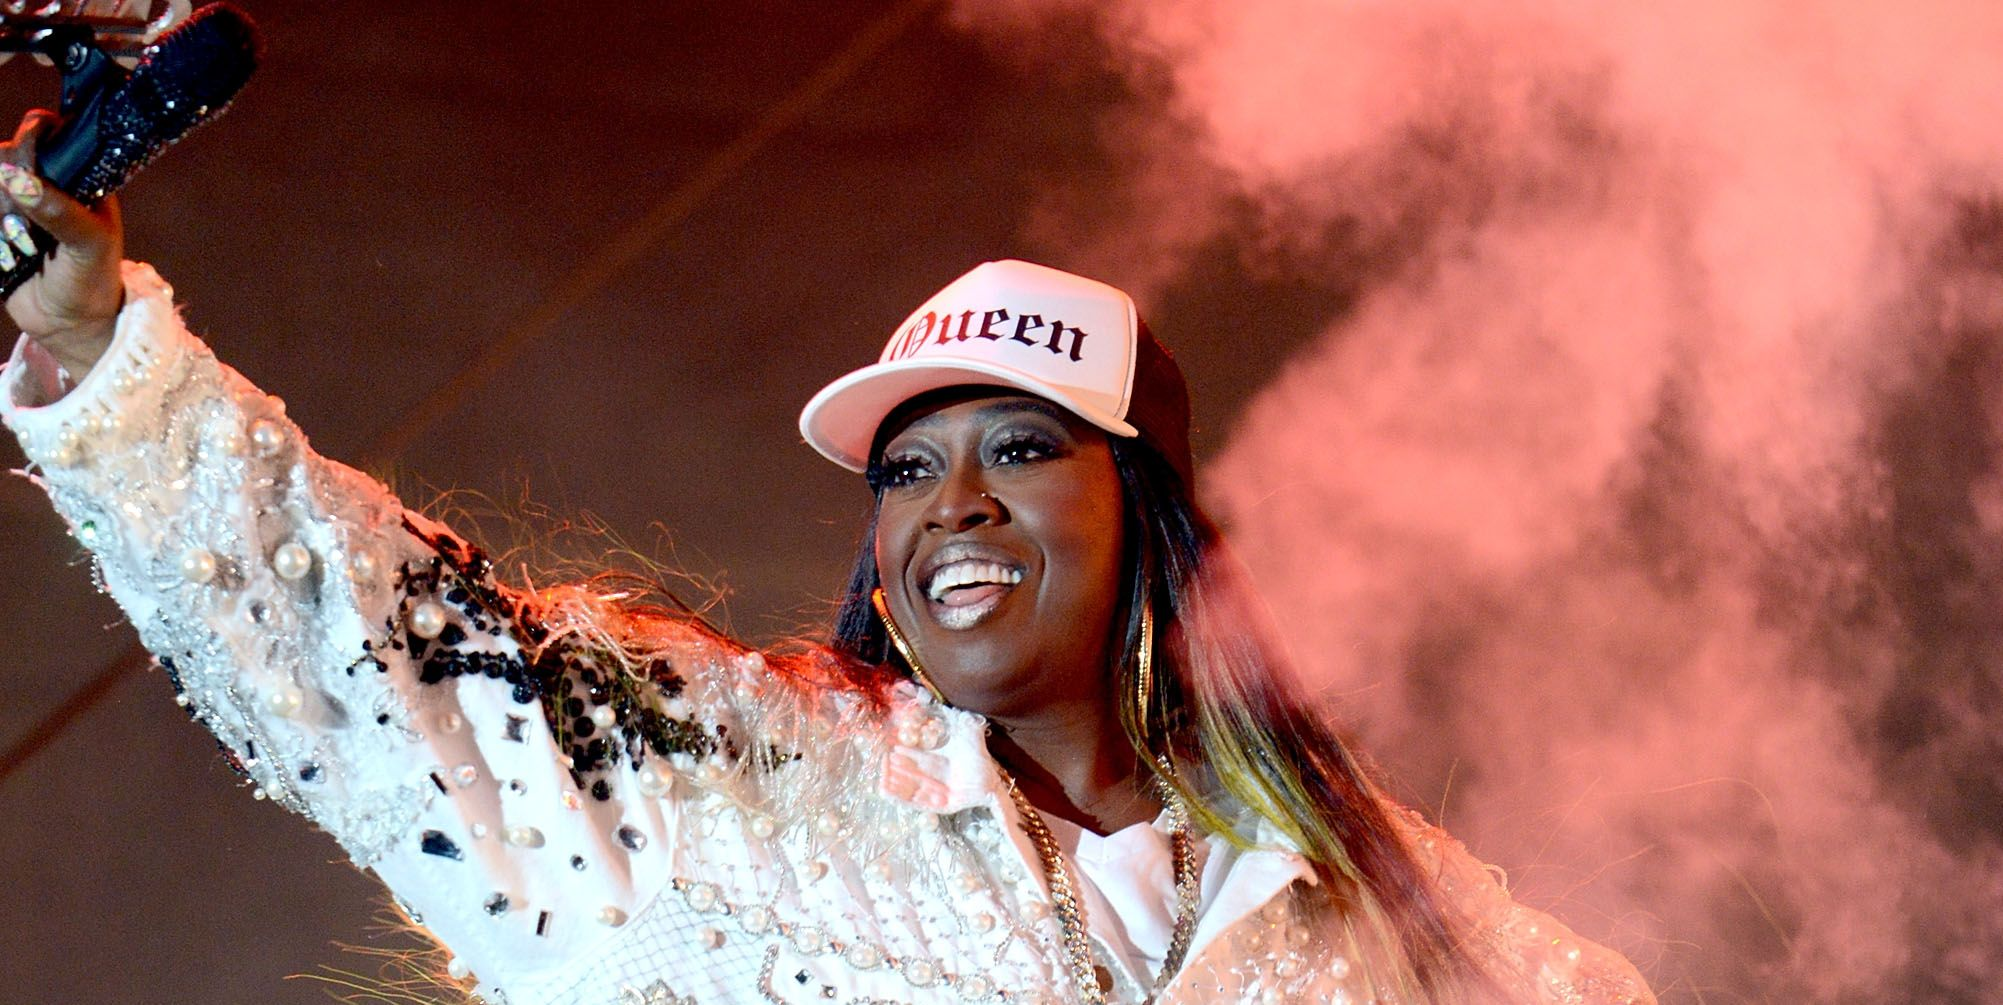 There's Now A Petition To Replace A Confederate Statue with Missy Elliott